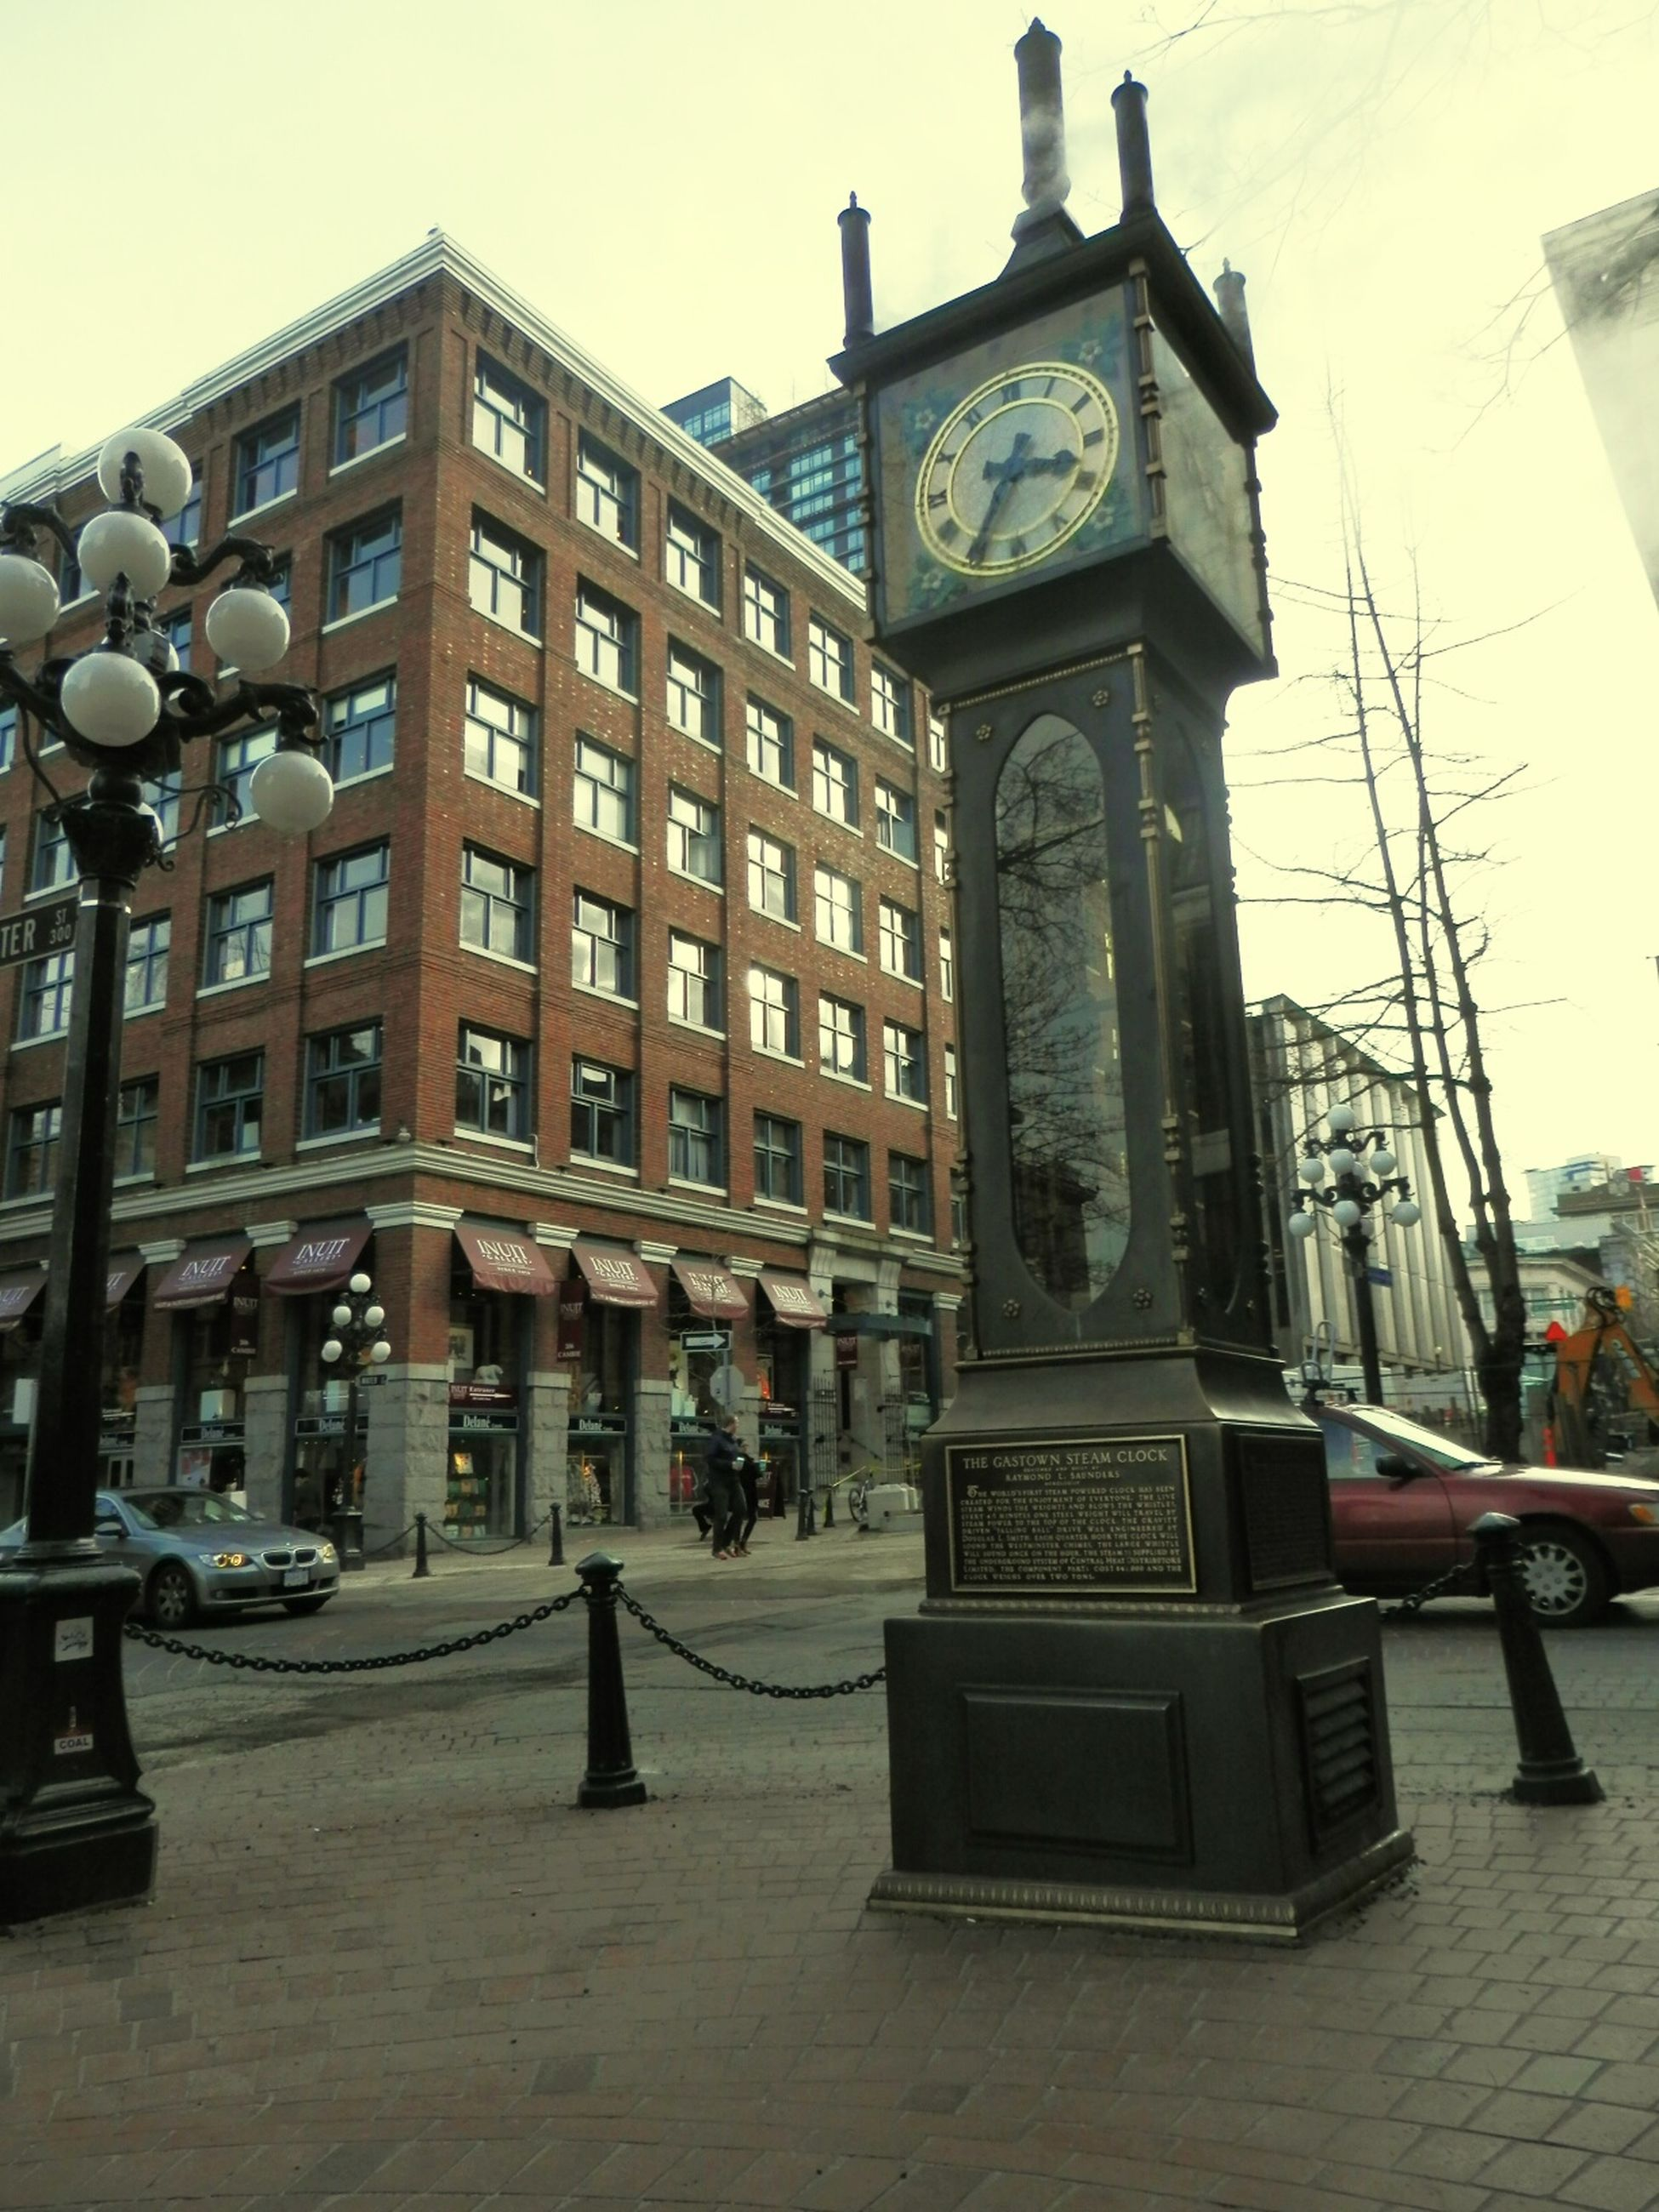 building exterior, architecture, built structure, city, window, clock tower, city street, city life, outdoors, history